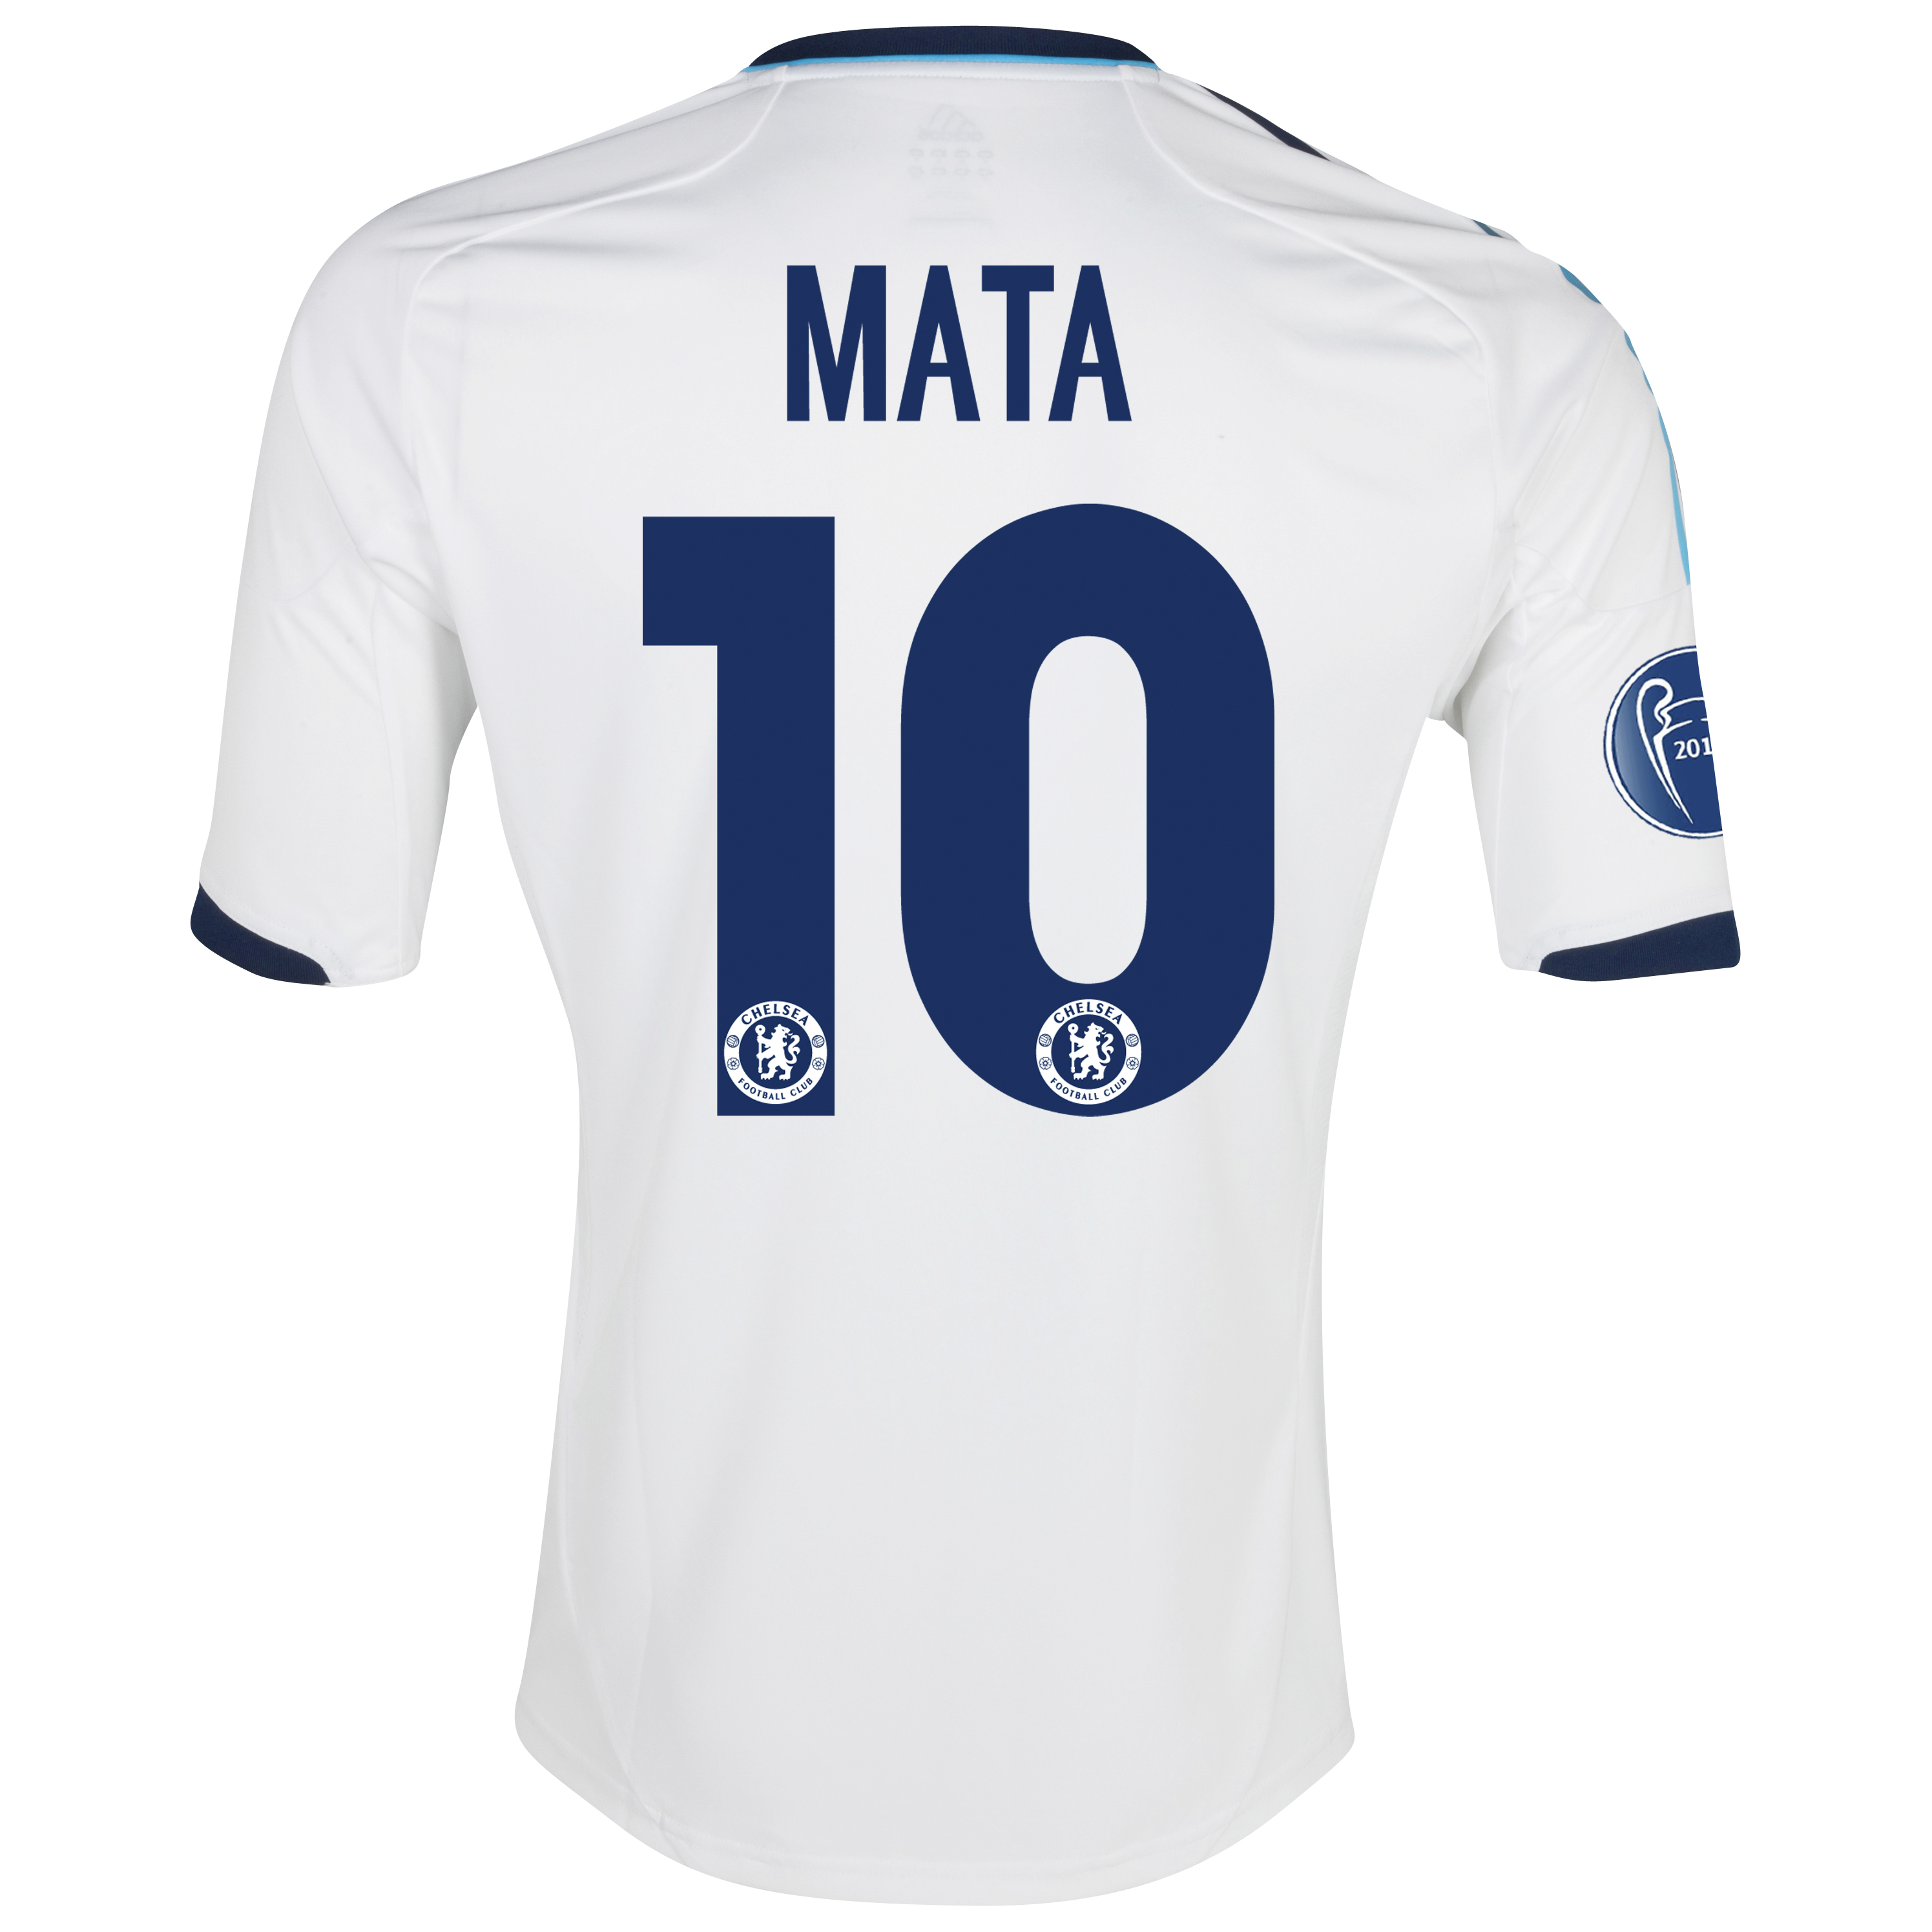 Chelsea UEFA Champions League Away Shirt 2012/13 - Kids with Mata 10 printing